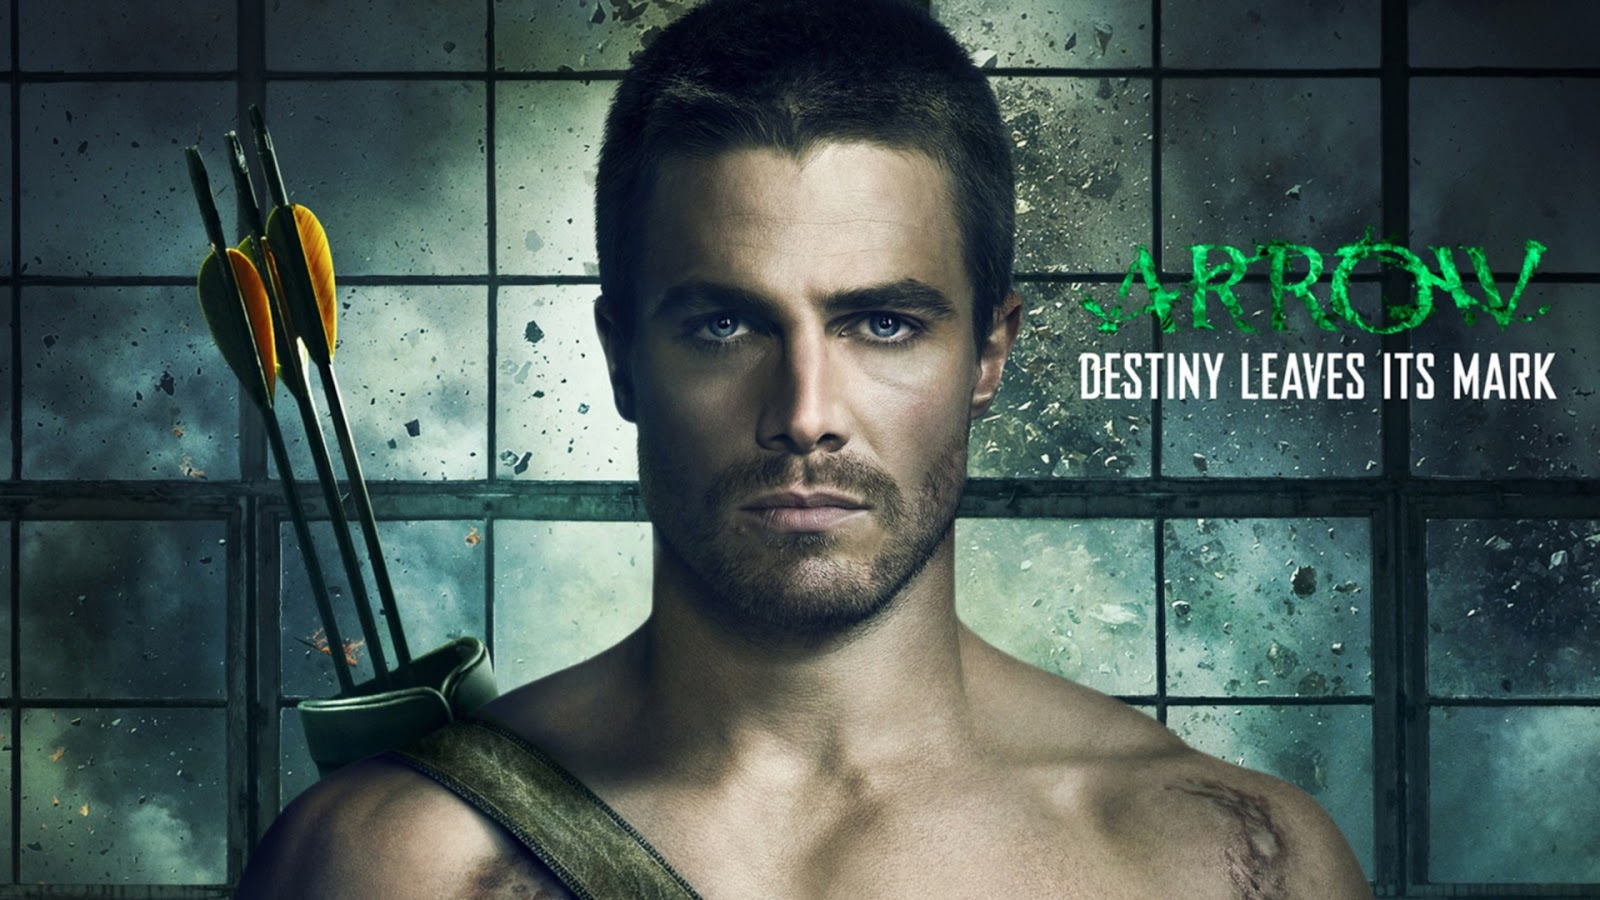 http://4.bp.blogspot.com/-ufykeu1NMkk/UNA6qddPSNI/AAAAAAAAKRA/tuw1x4O_DdA/s1600/arrow-tv-movie.jpg